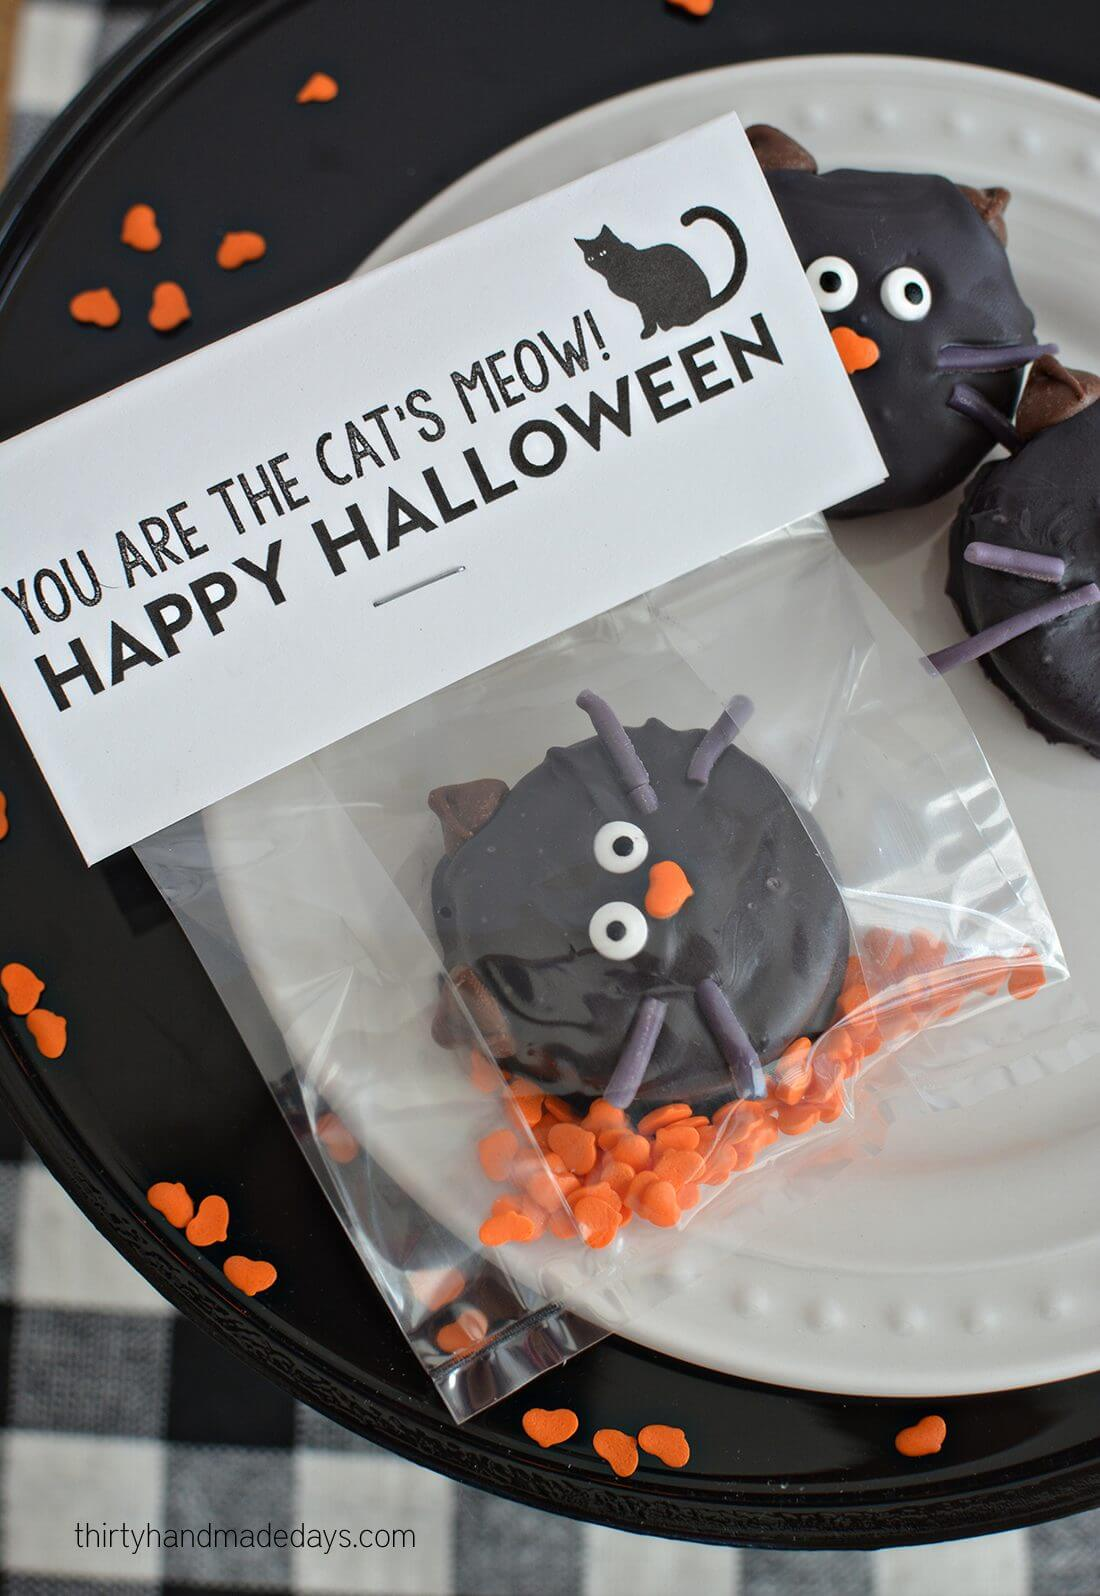 You are the cat's meow - Halloween Printables www.thirtyhandmadedays.com